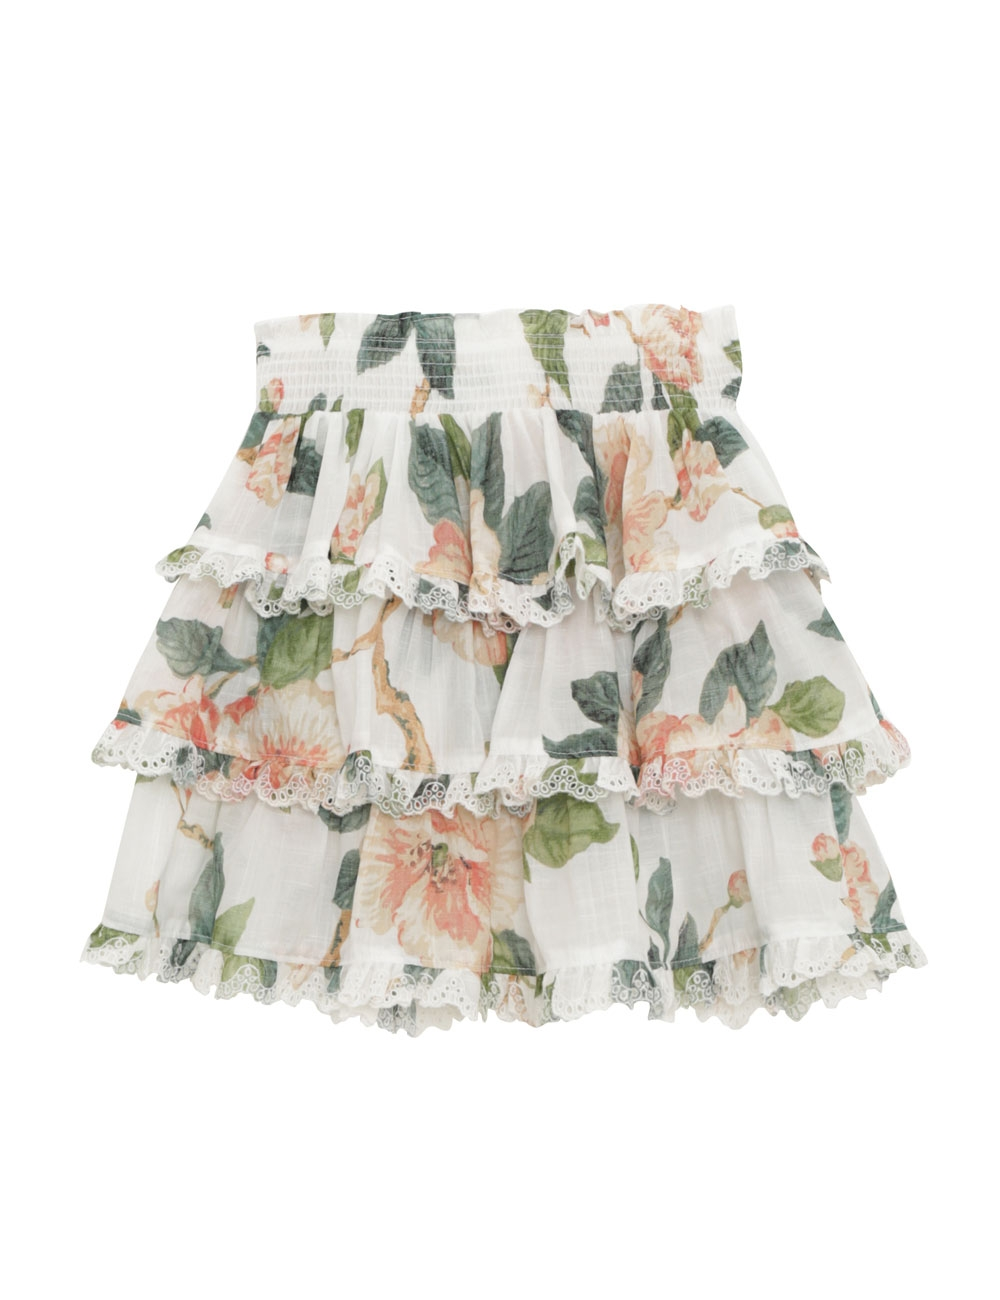 Kirra Tiered Trim Skirt